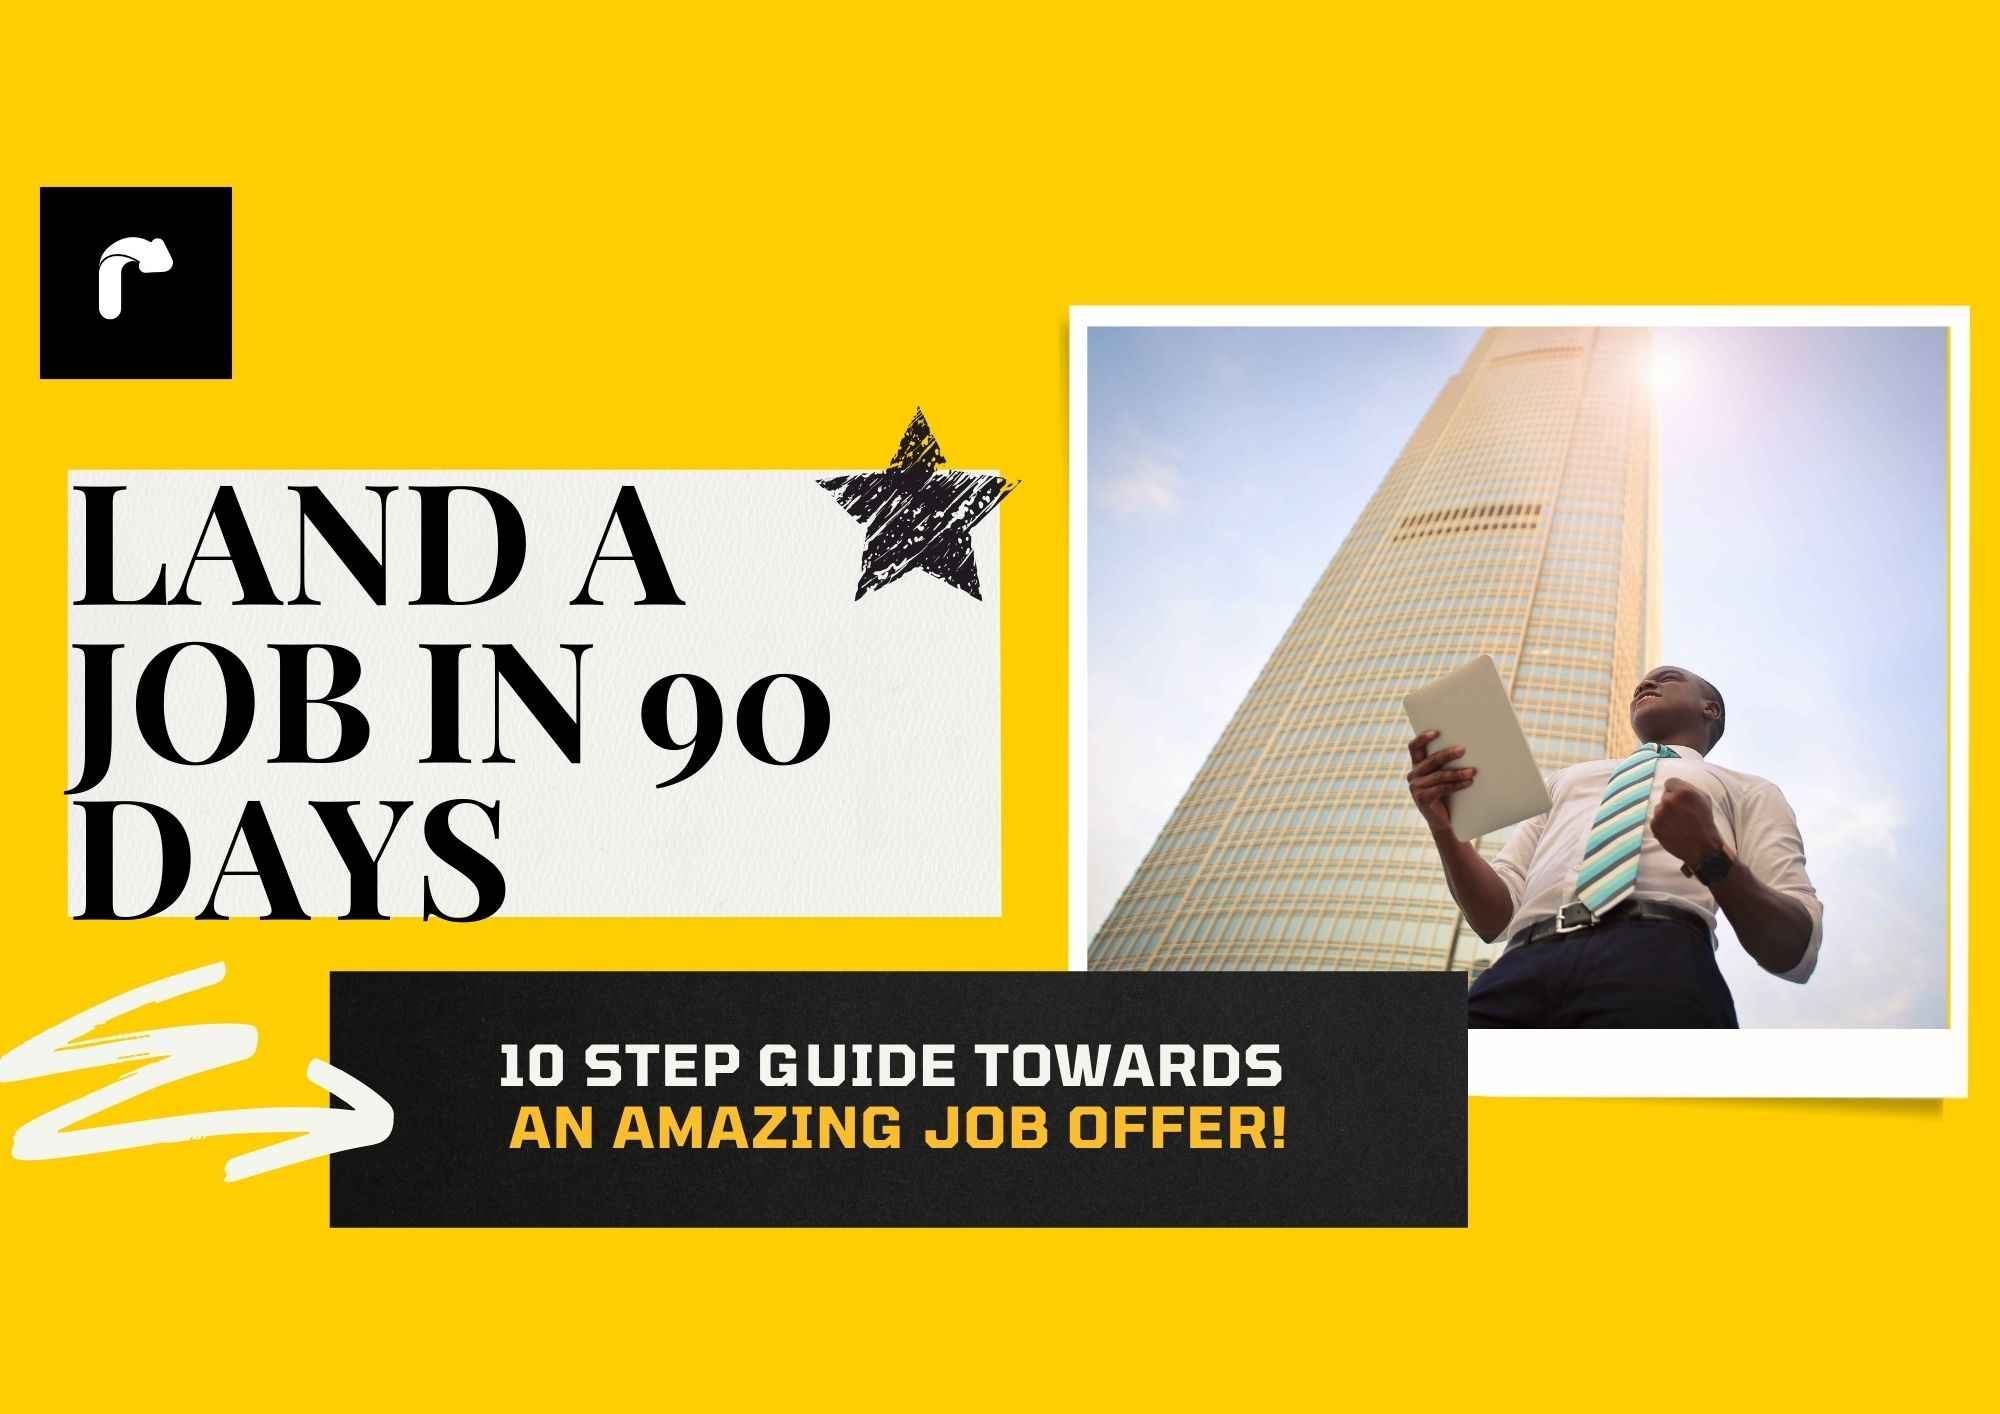 Land a Job in 90 Days